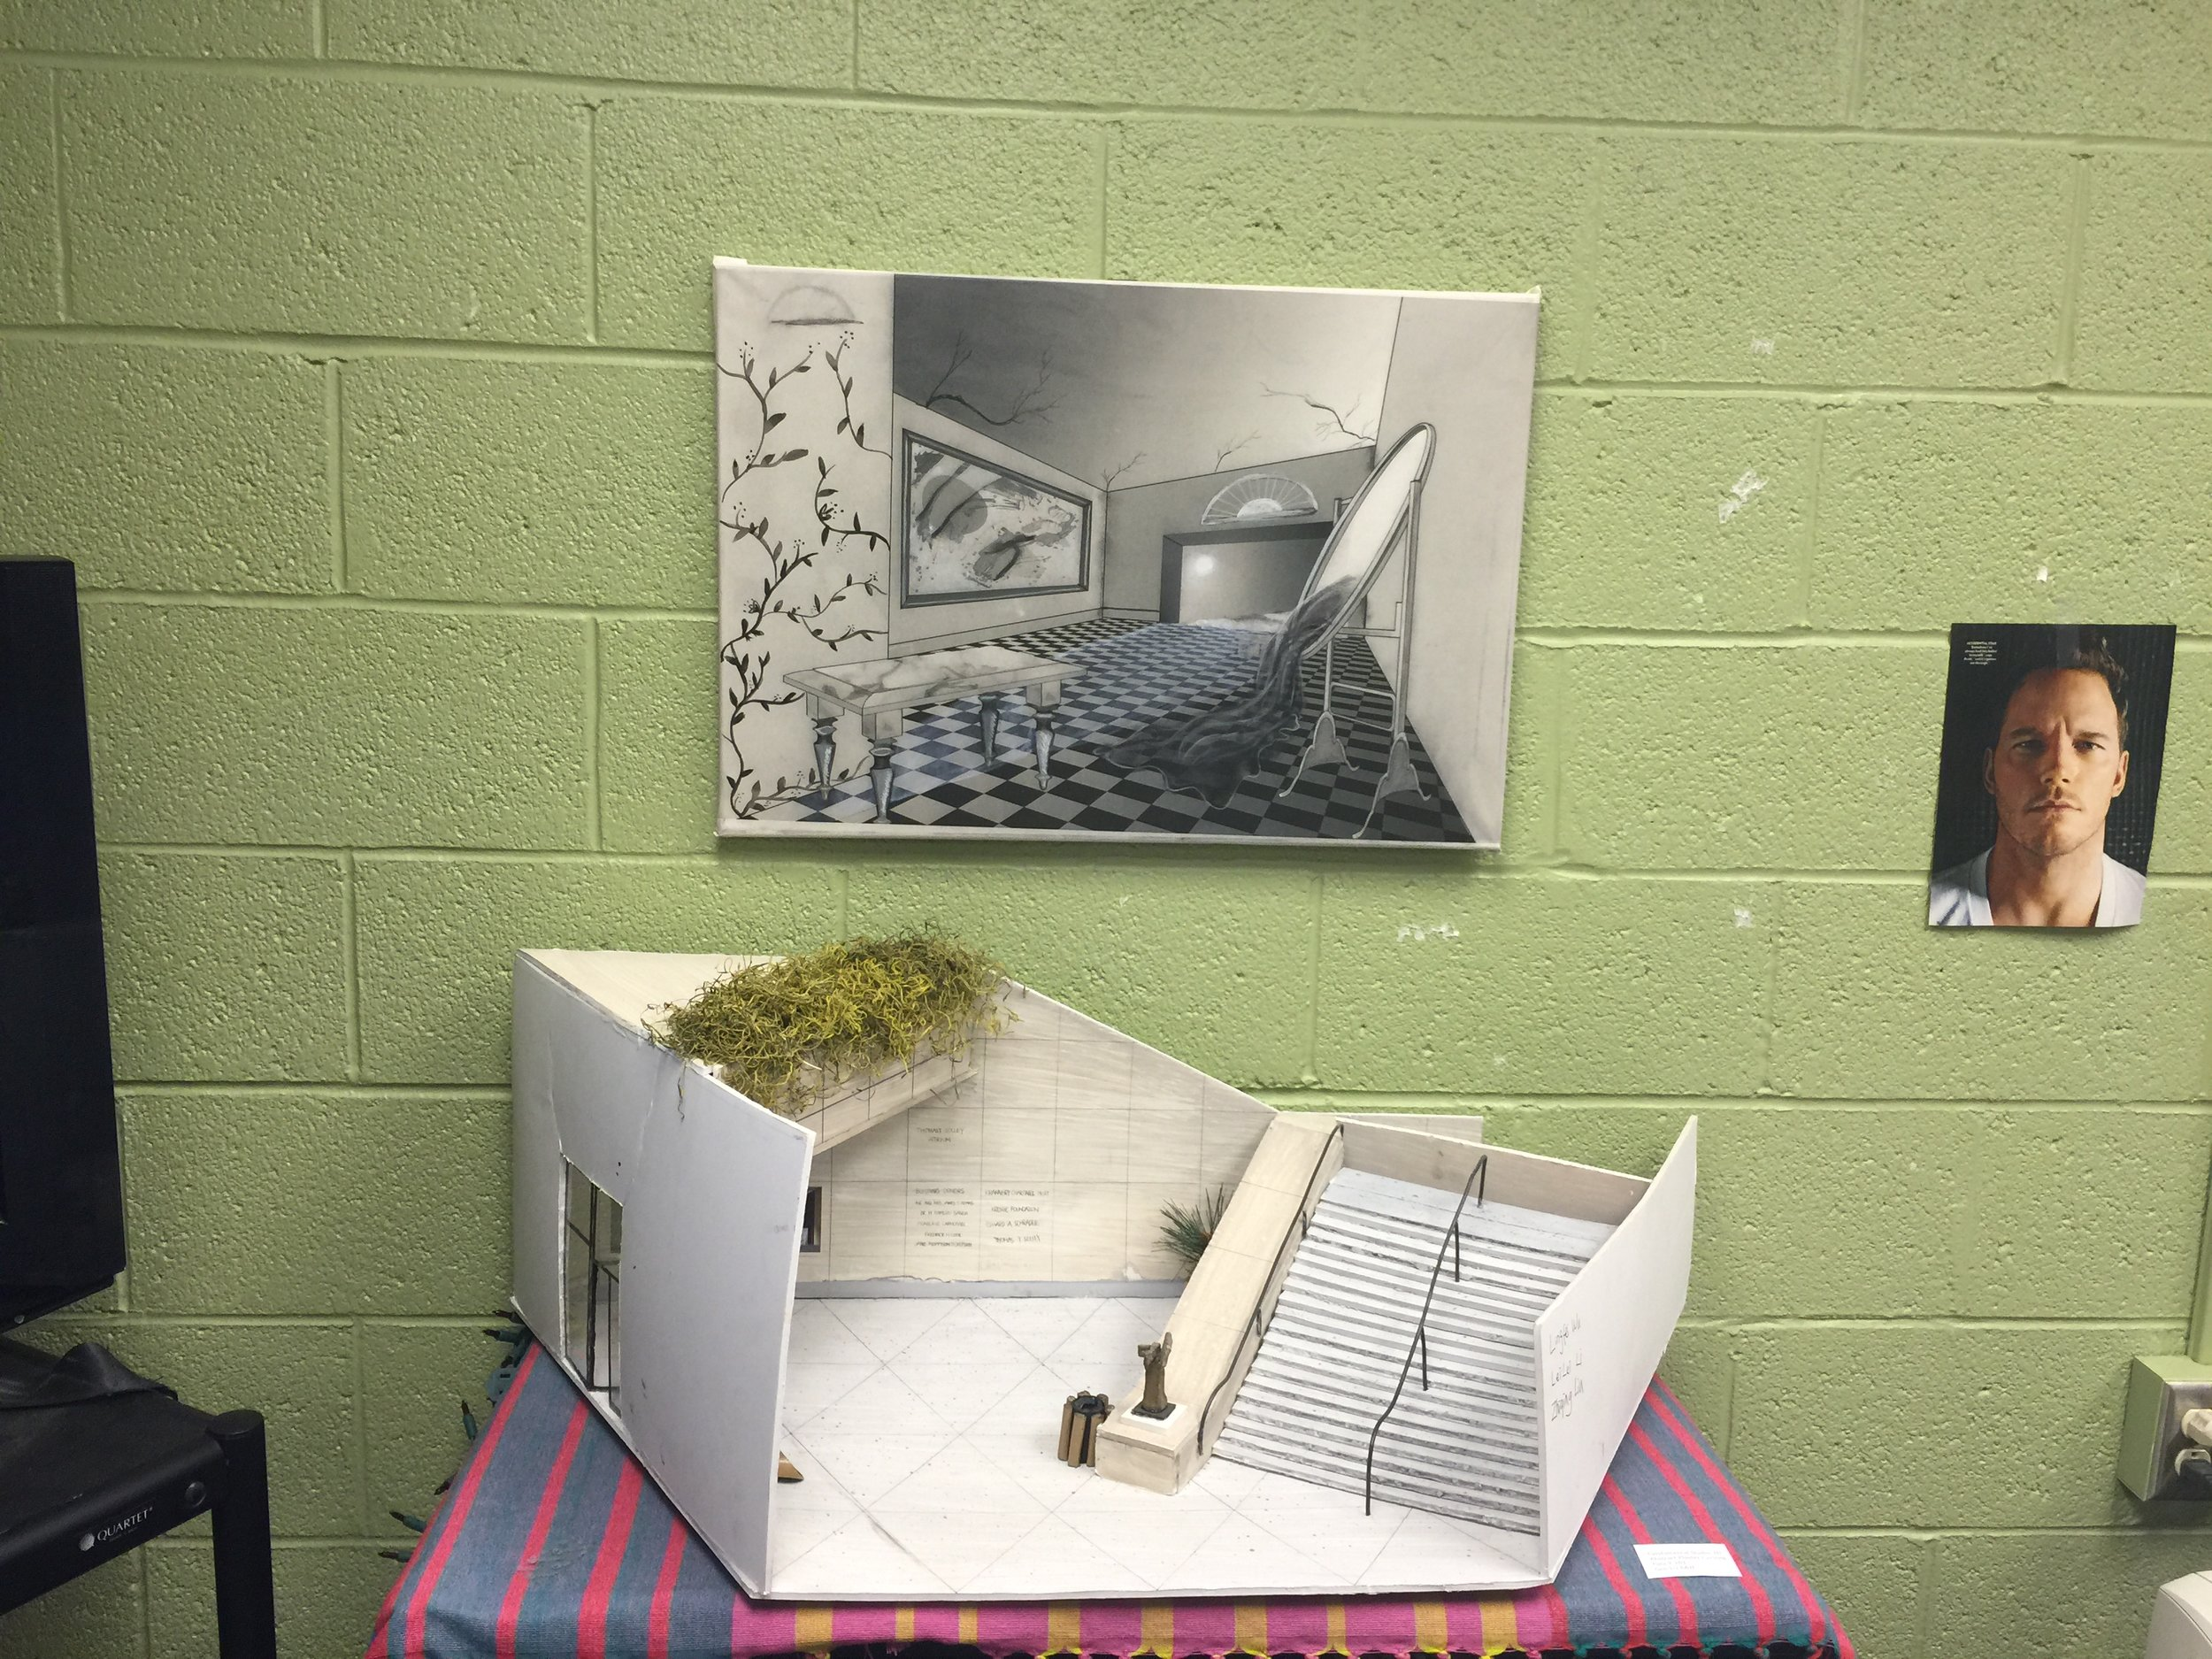 3D model of the IU Art Museum and 2D art created in the Introduction to Computer Art.